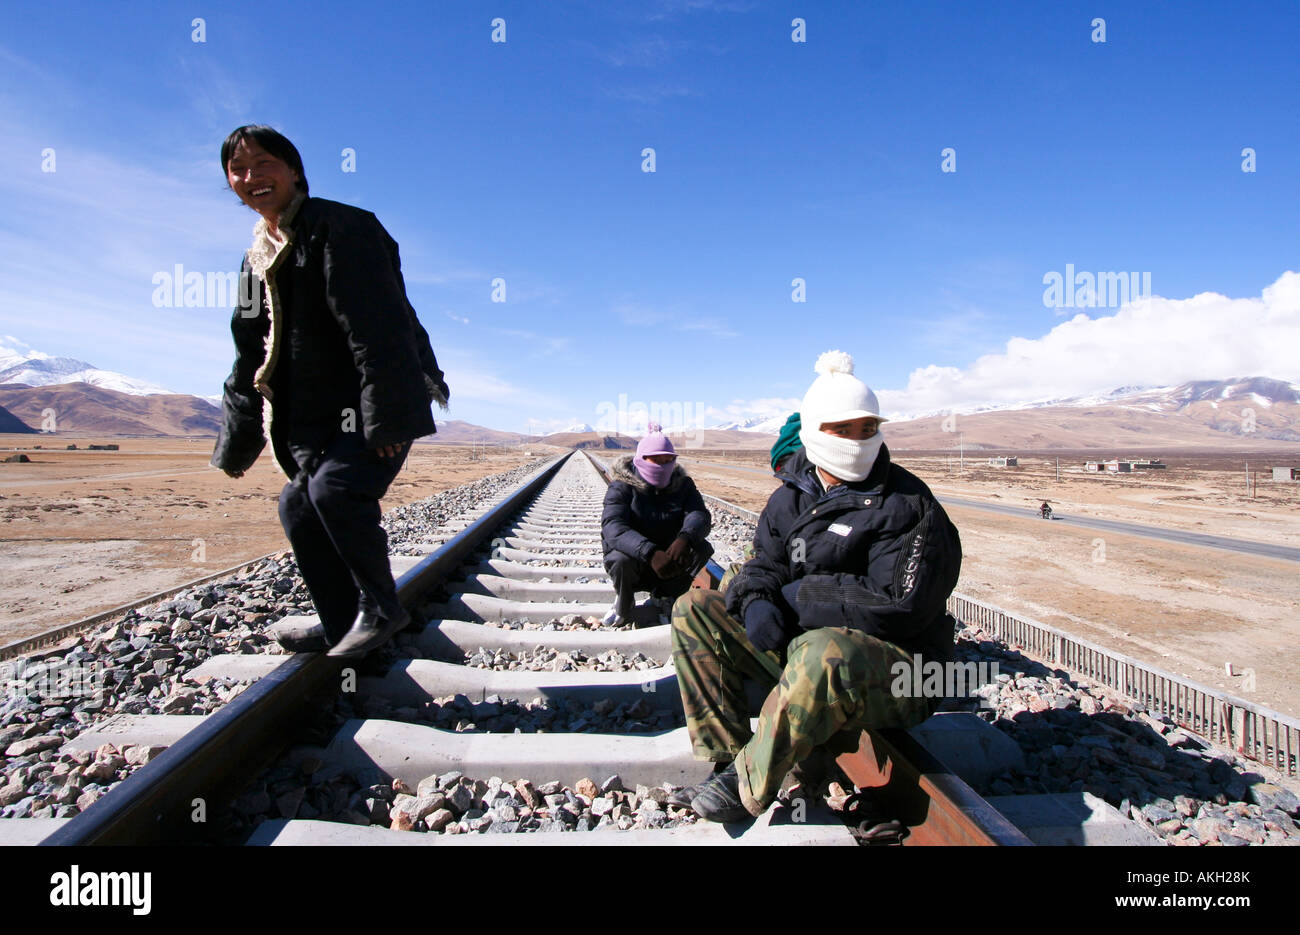 Local Tibetans sitting on the railroad to Lhasa. - Stock Image